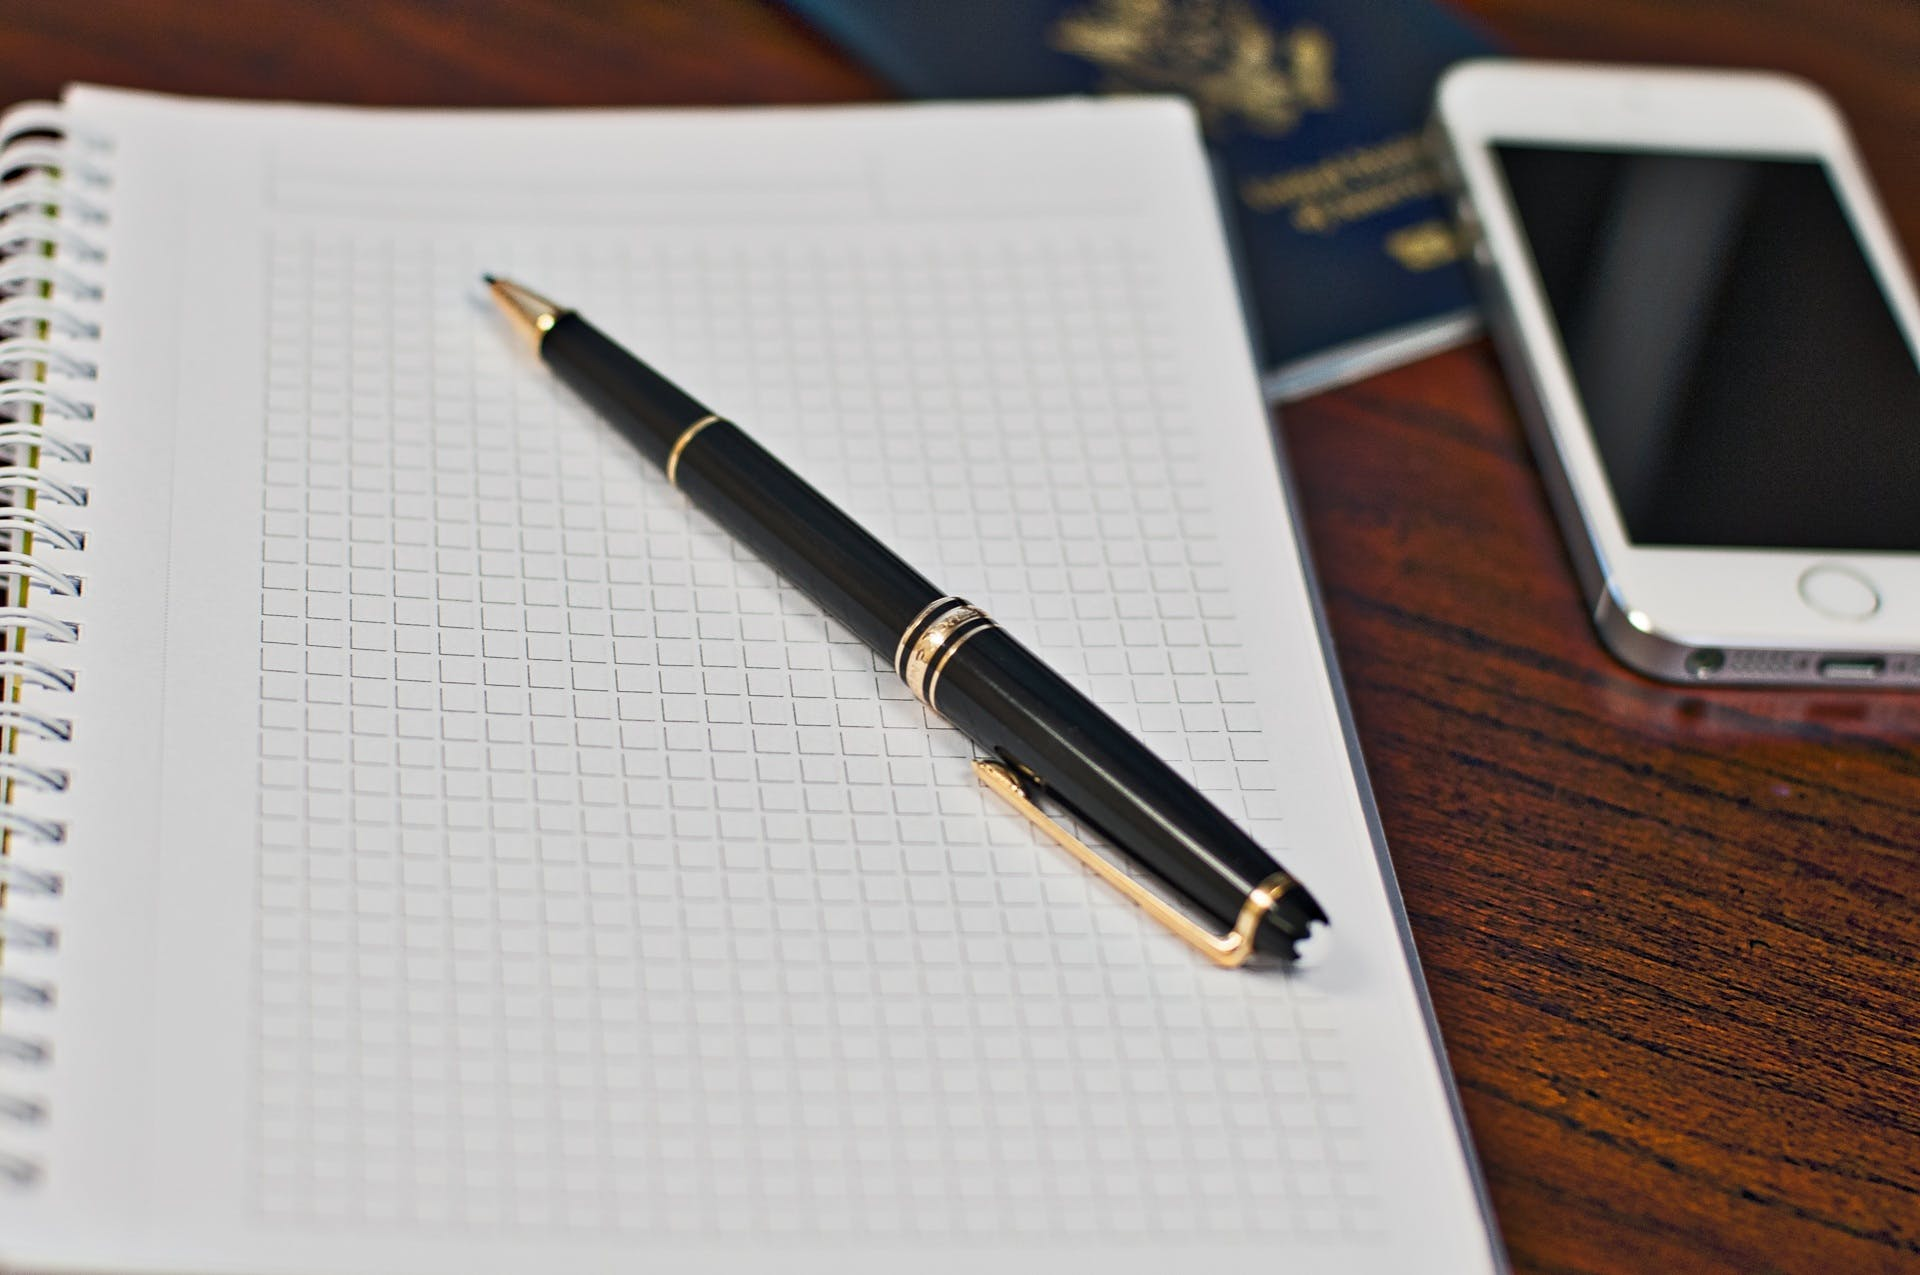 Black Click Pen on Spring Notebook